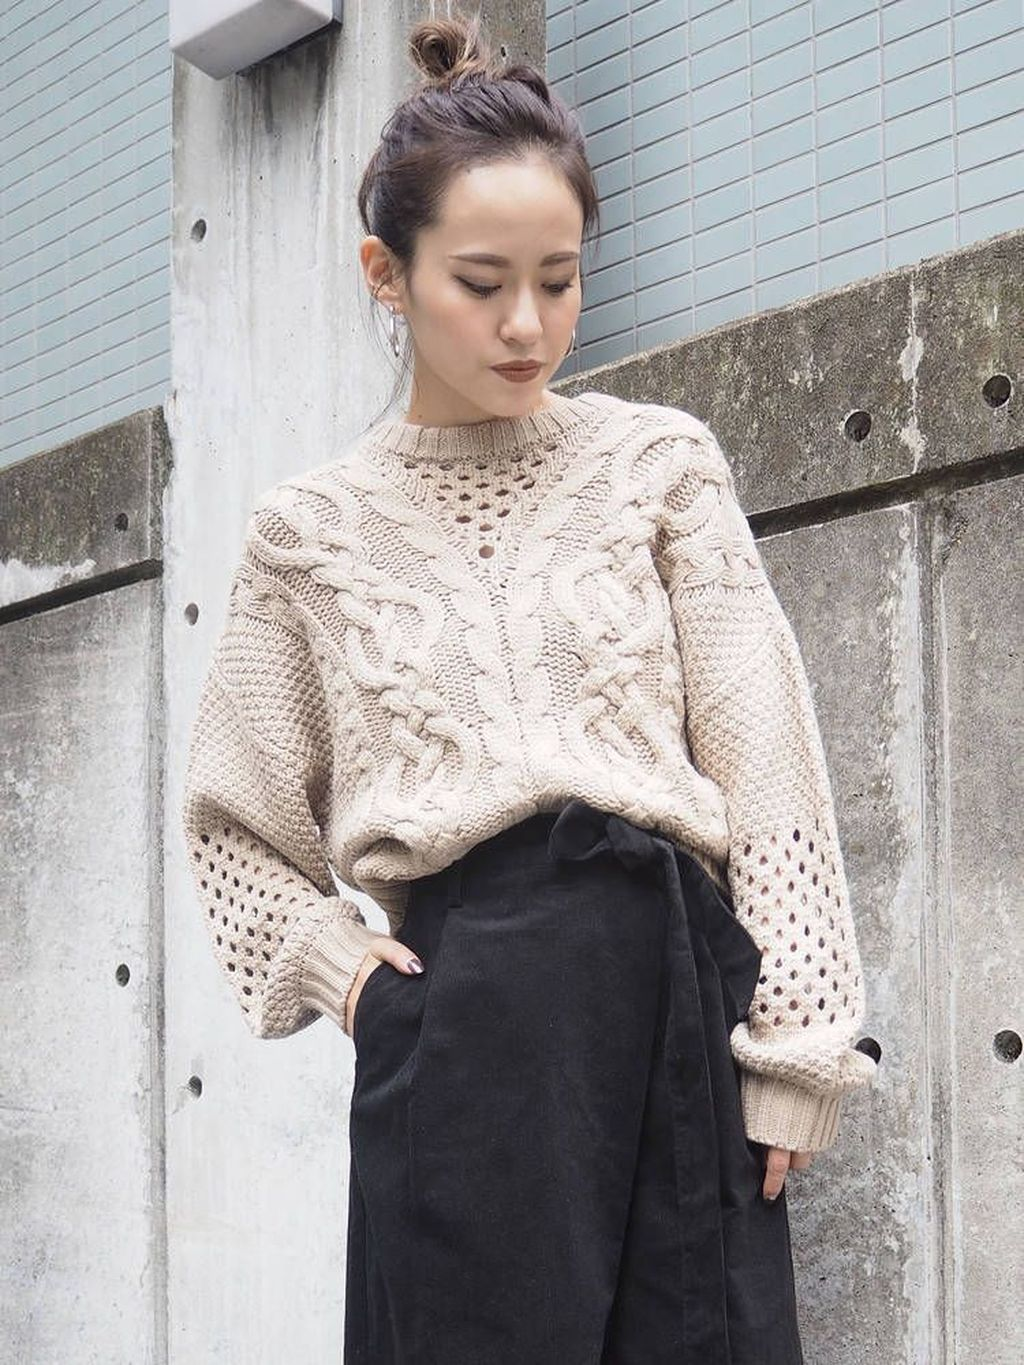 38 Awesome Women Knitwear Fashion Trend 2019 Best For Fall And Winter